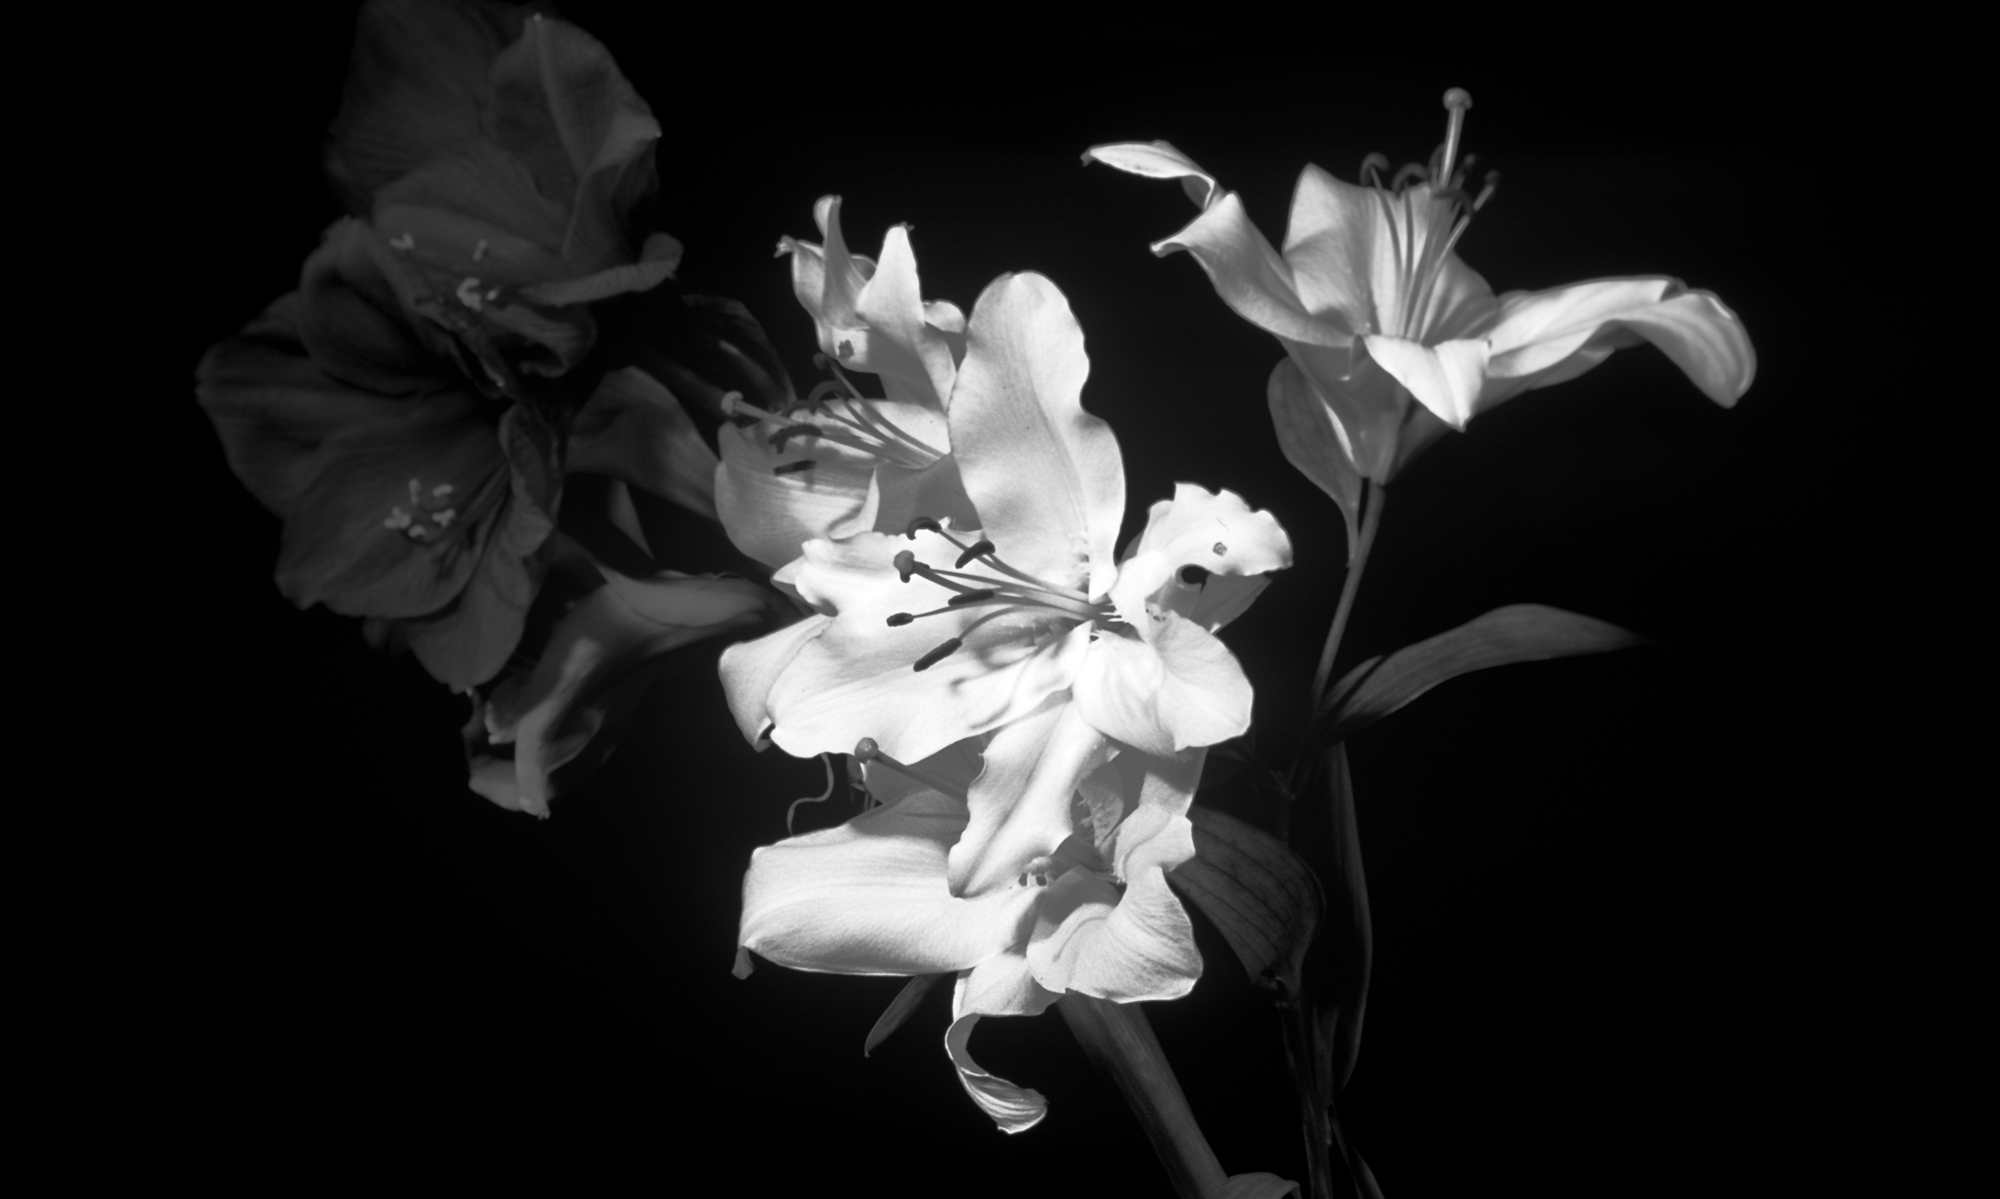 Abstract Black And White Flower Photography Black And White Flowers 7736